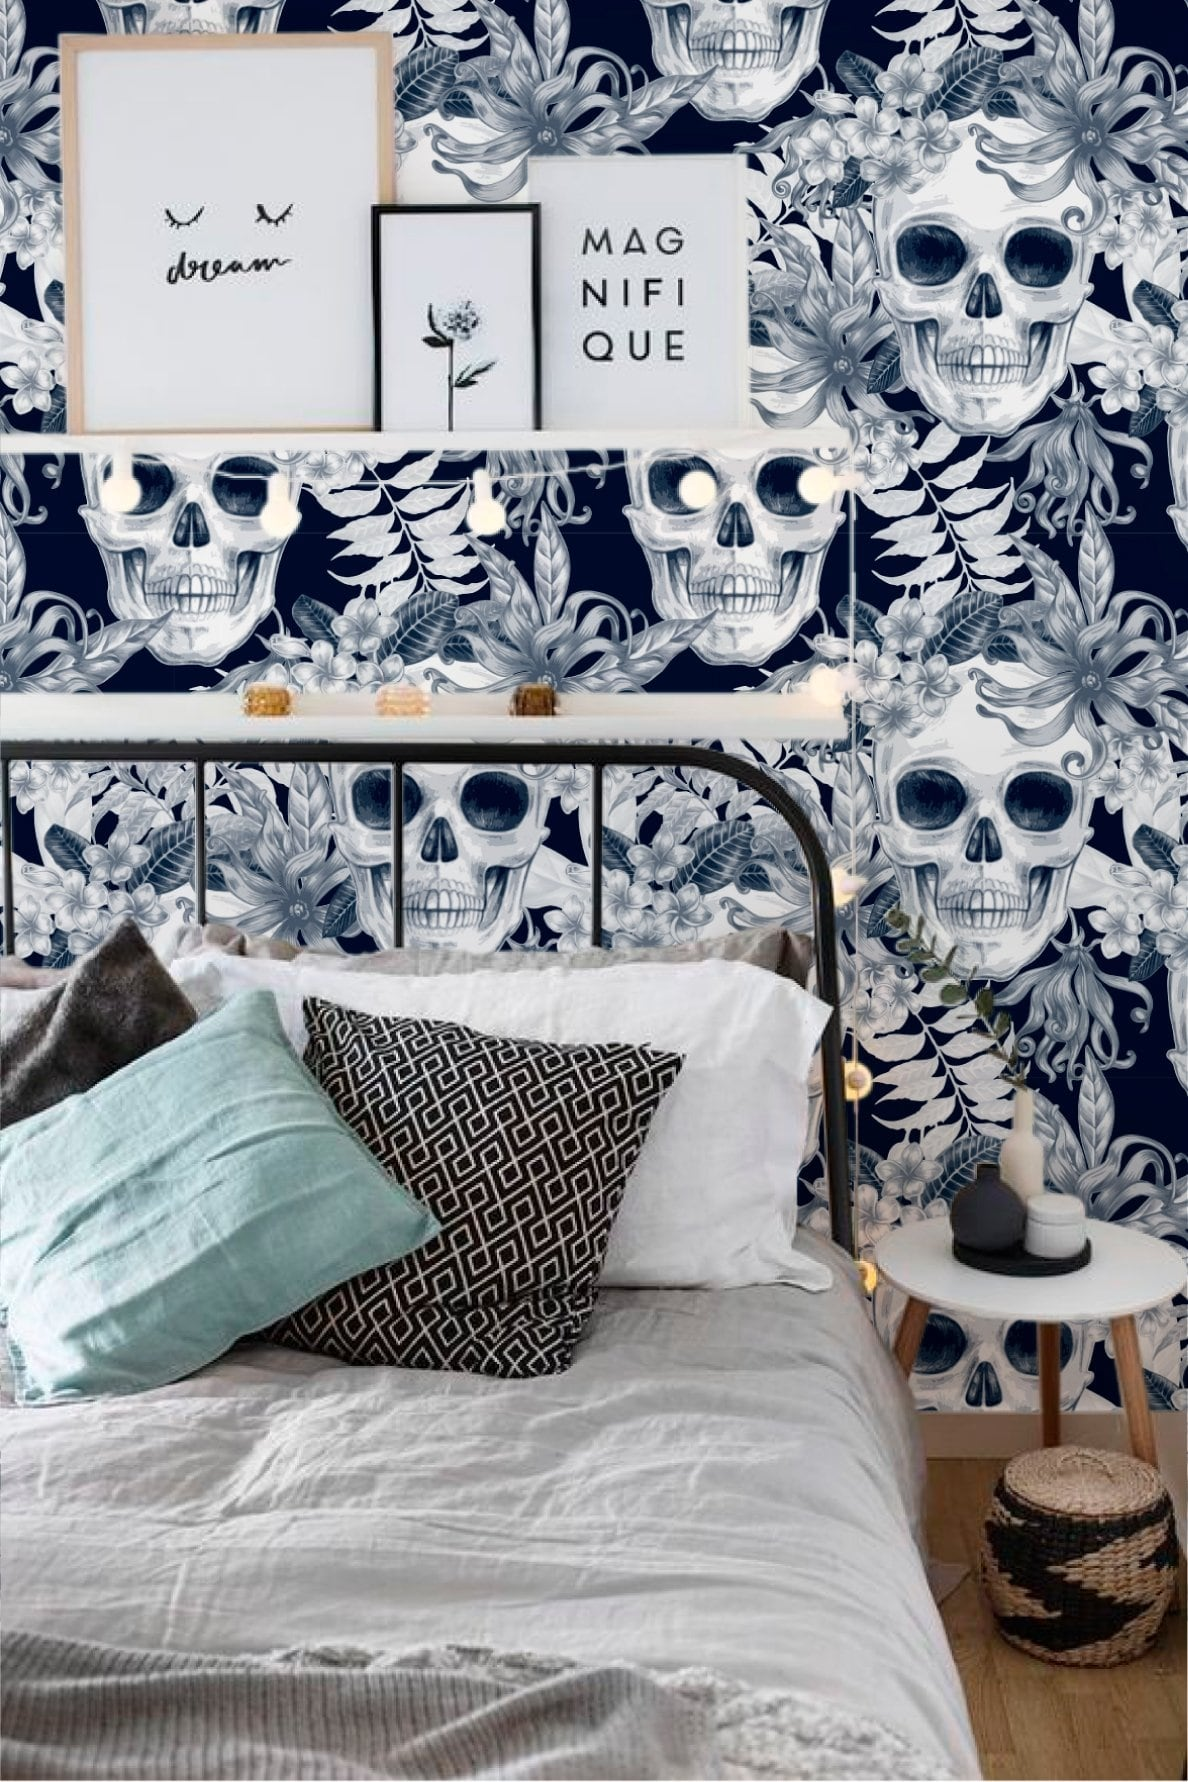 Skull flowers wallpaper for a unique interior